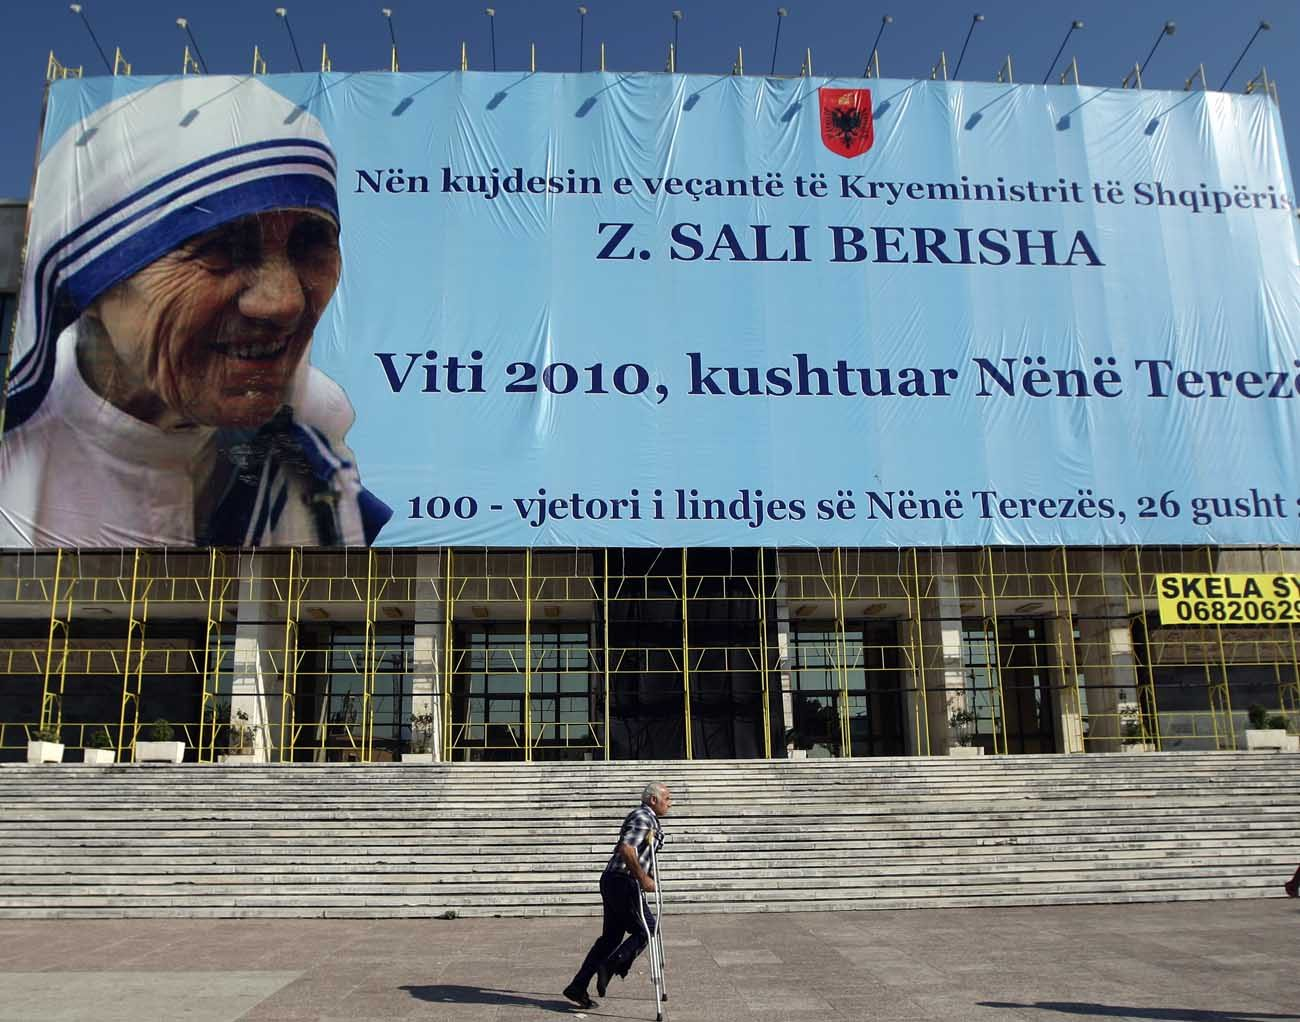 A man on crutches passes a large banner of Blessed Teresa of Kolkata in 2010 in Tirana, Albania. Mother Teresa, founder of the Missionaries of Charity who won the Nobel Peace Prize in 1979, will become a saint Sept. 4. (CNS photo/Armando Babani, EPA)